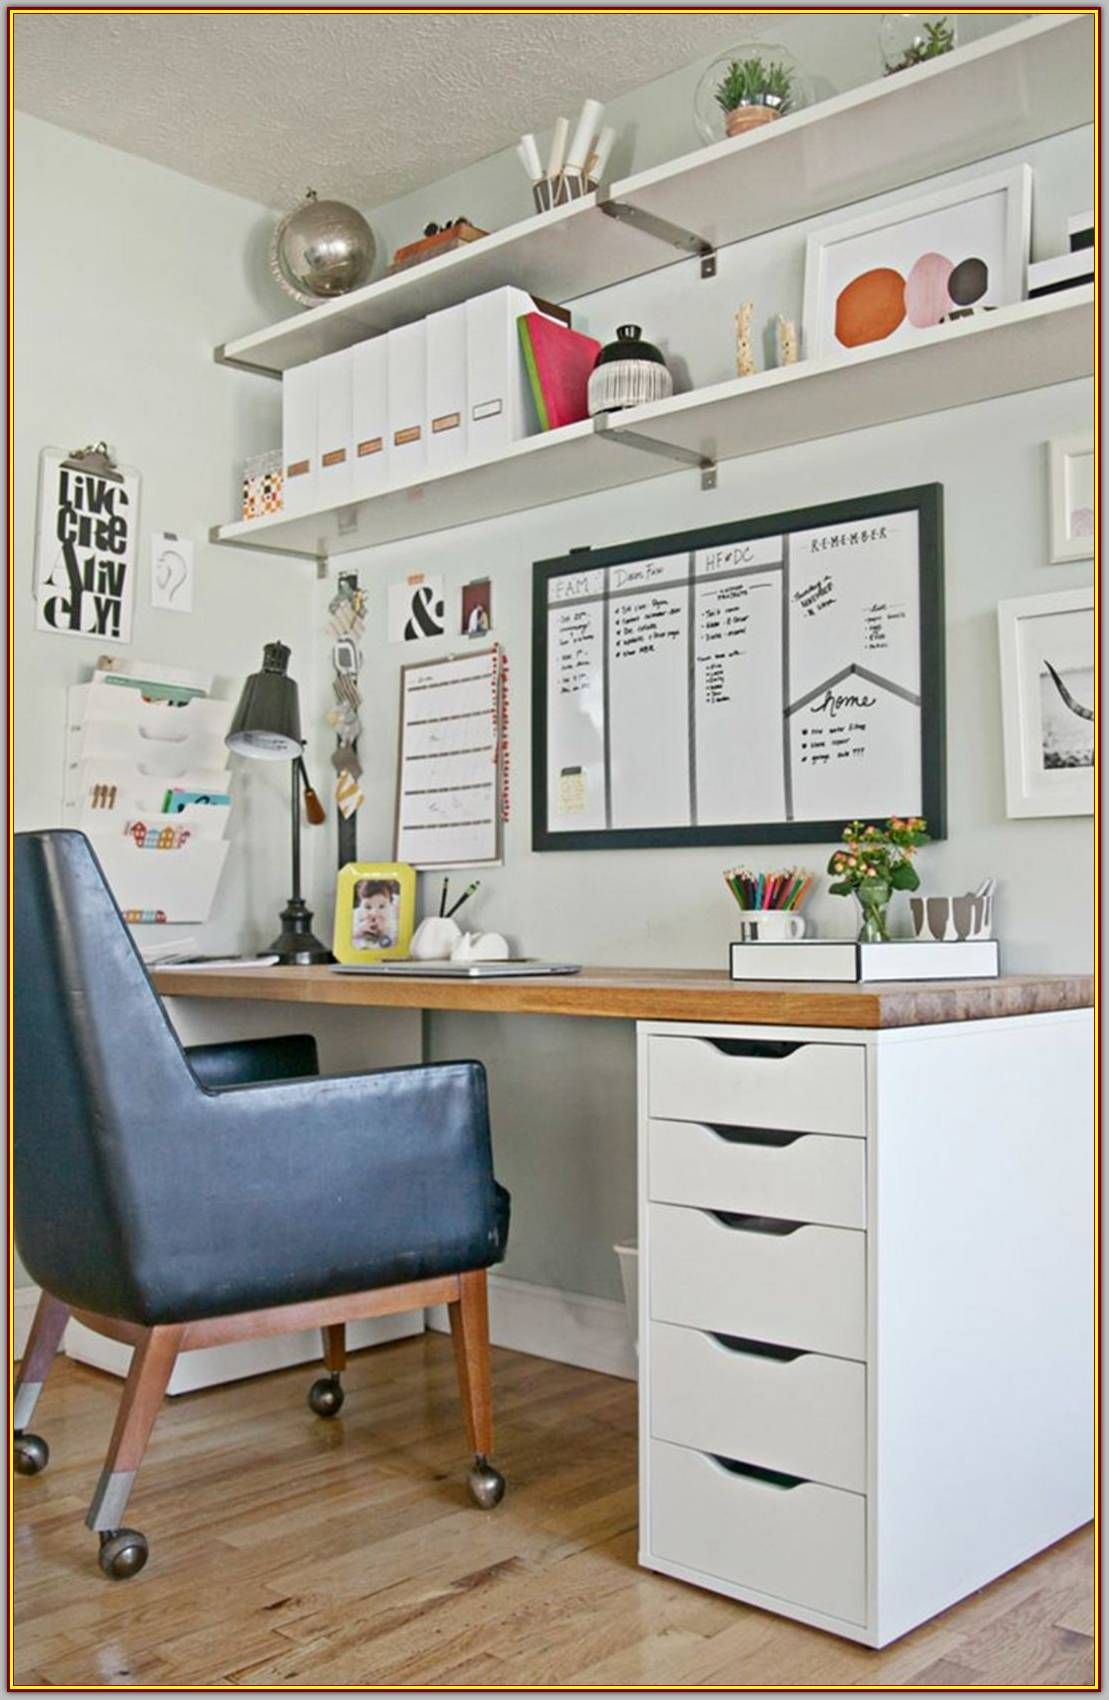 Furnish Your Home Office Decor With These Tips And Tricks Modern Interior Design Small Bedroom Ikea